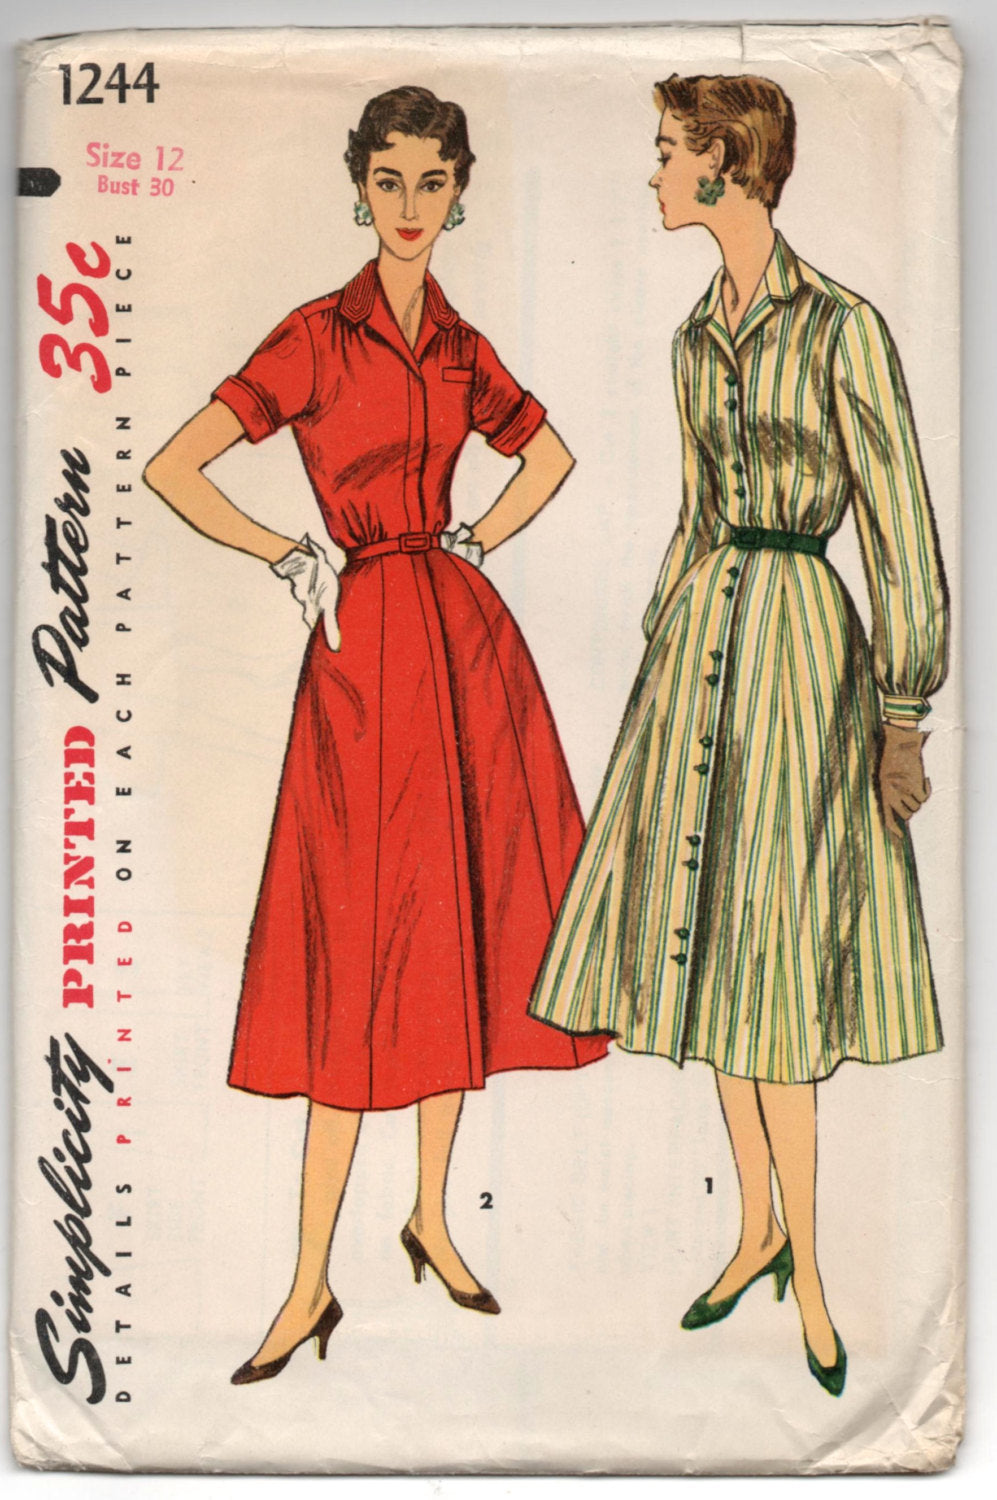 1950's Simplicity One-Piece Shirtwaist Dress with High Neck - UC/FF - Bust 30